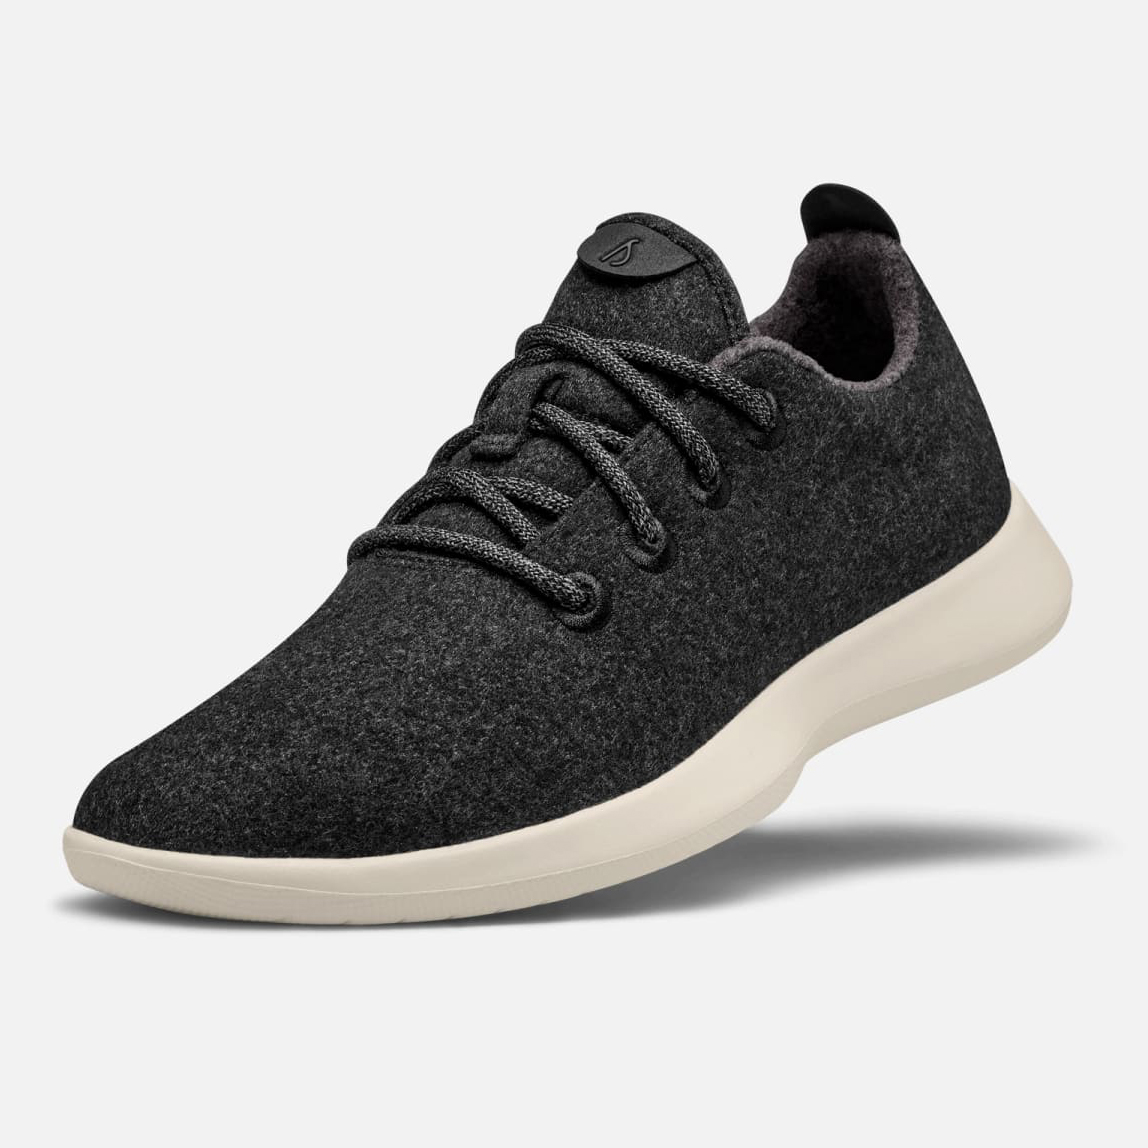 Allbirds Women's Wool Runners